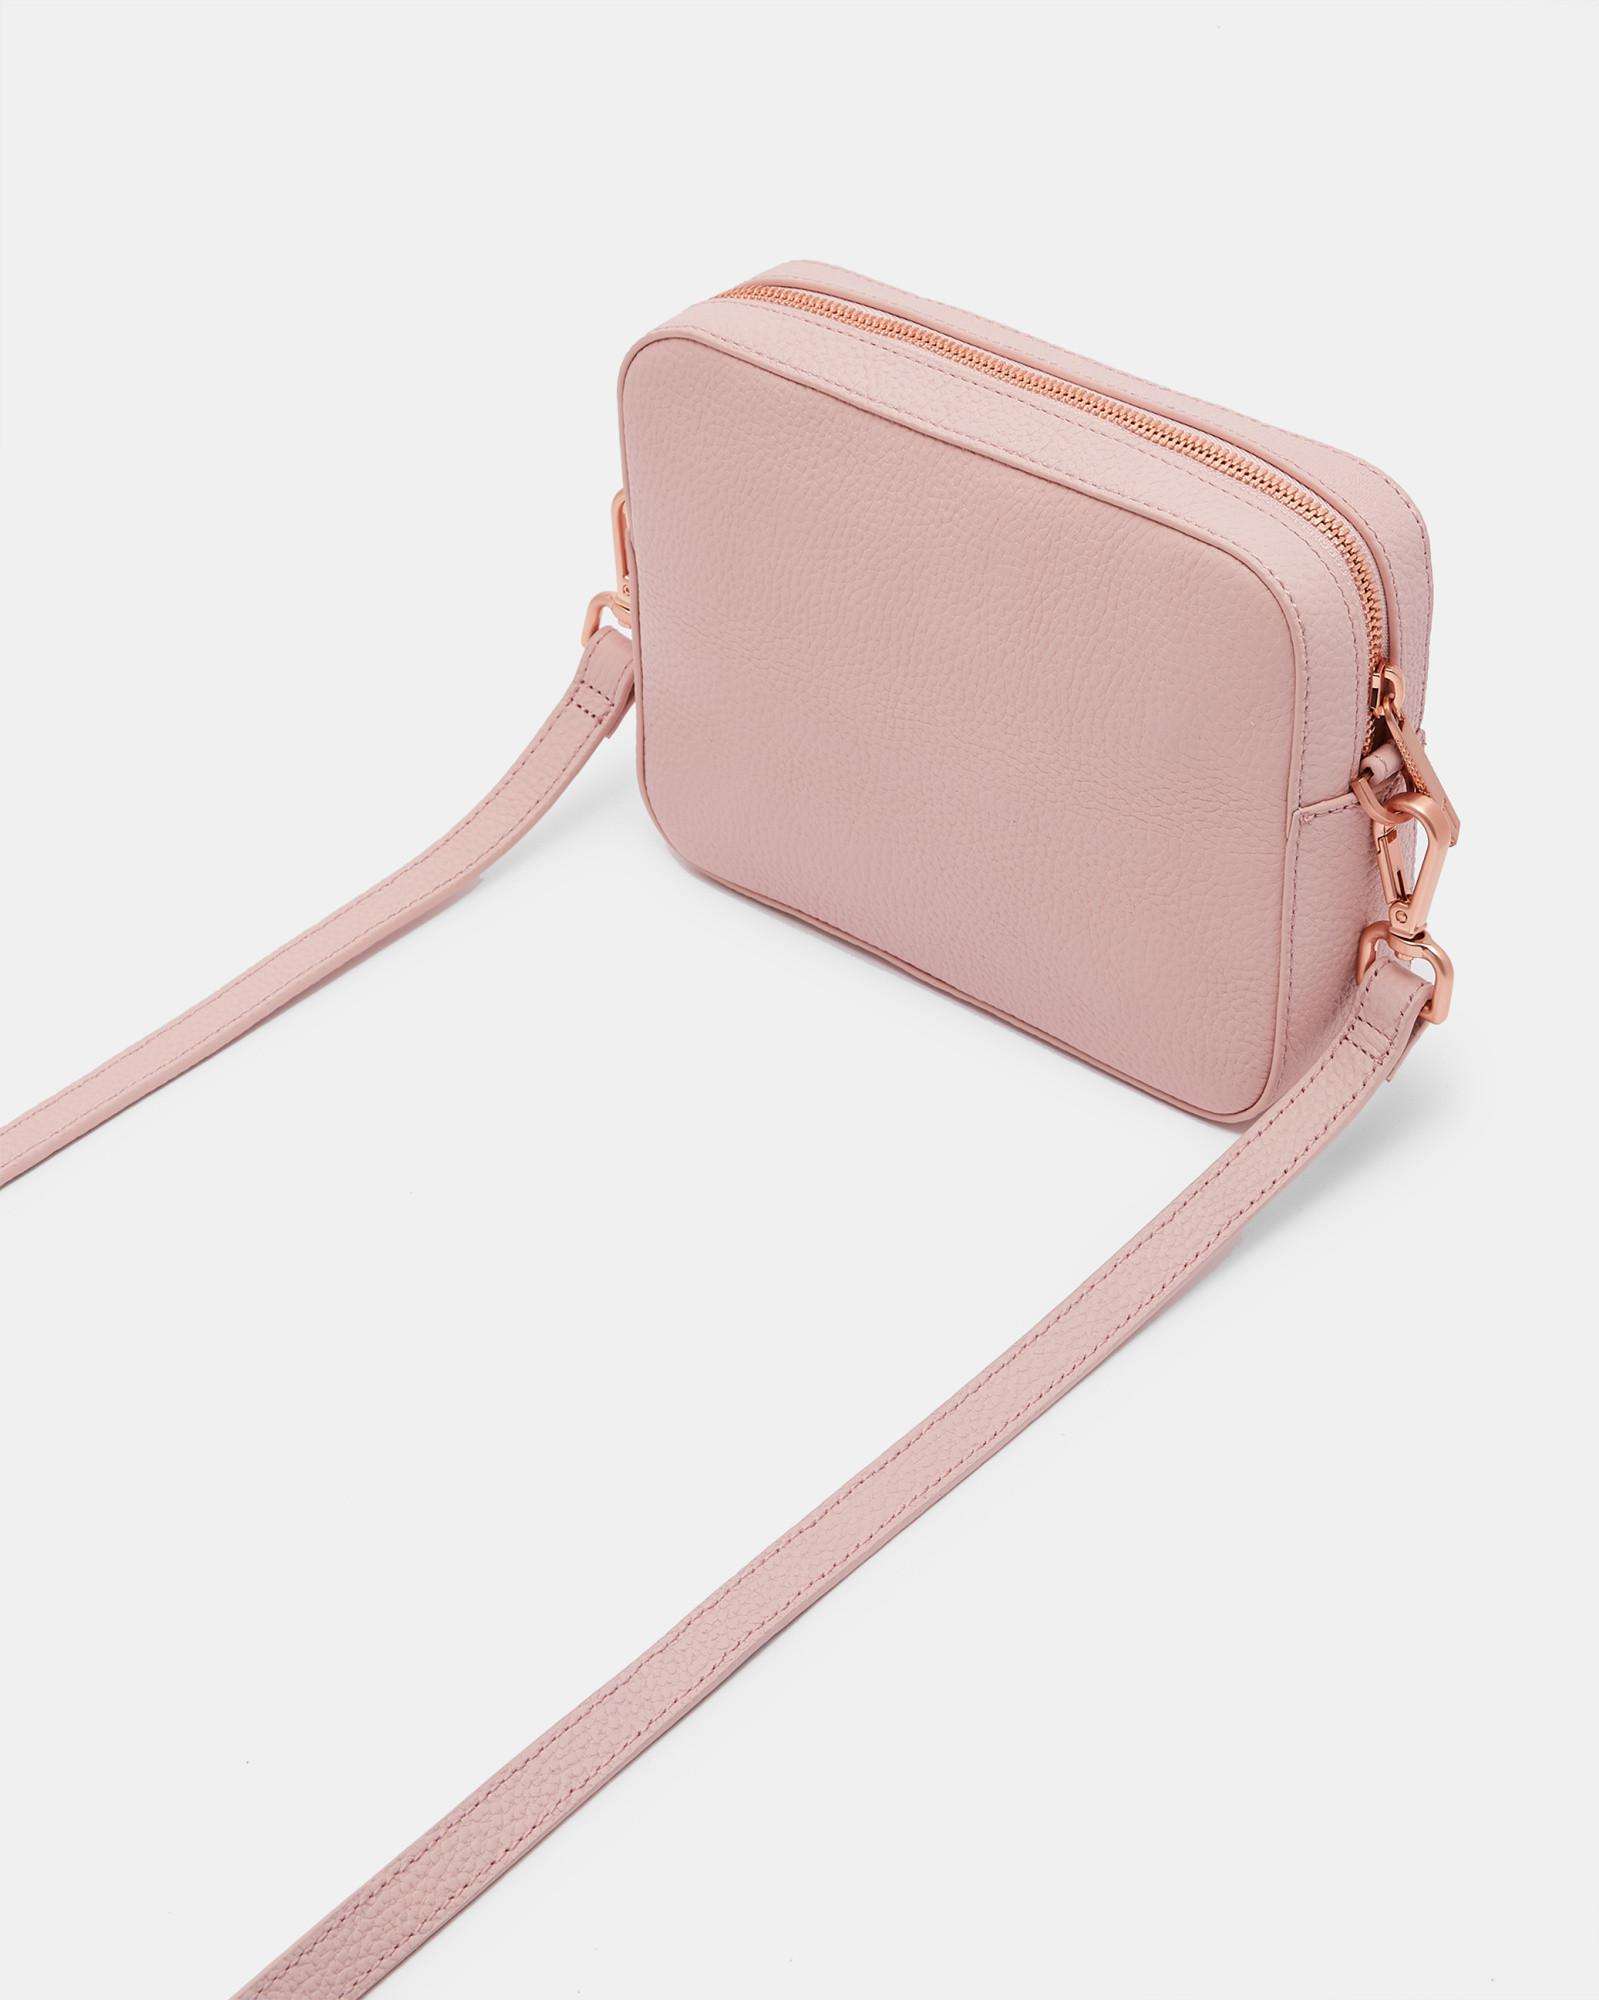 7fc21f42f6eb Lyst - Ted Baker Saphire Soft Leather Camera Bag in Pink - Save 30%